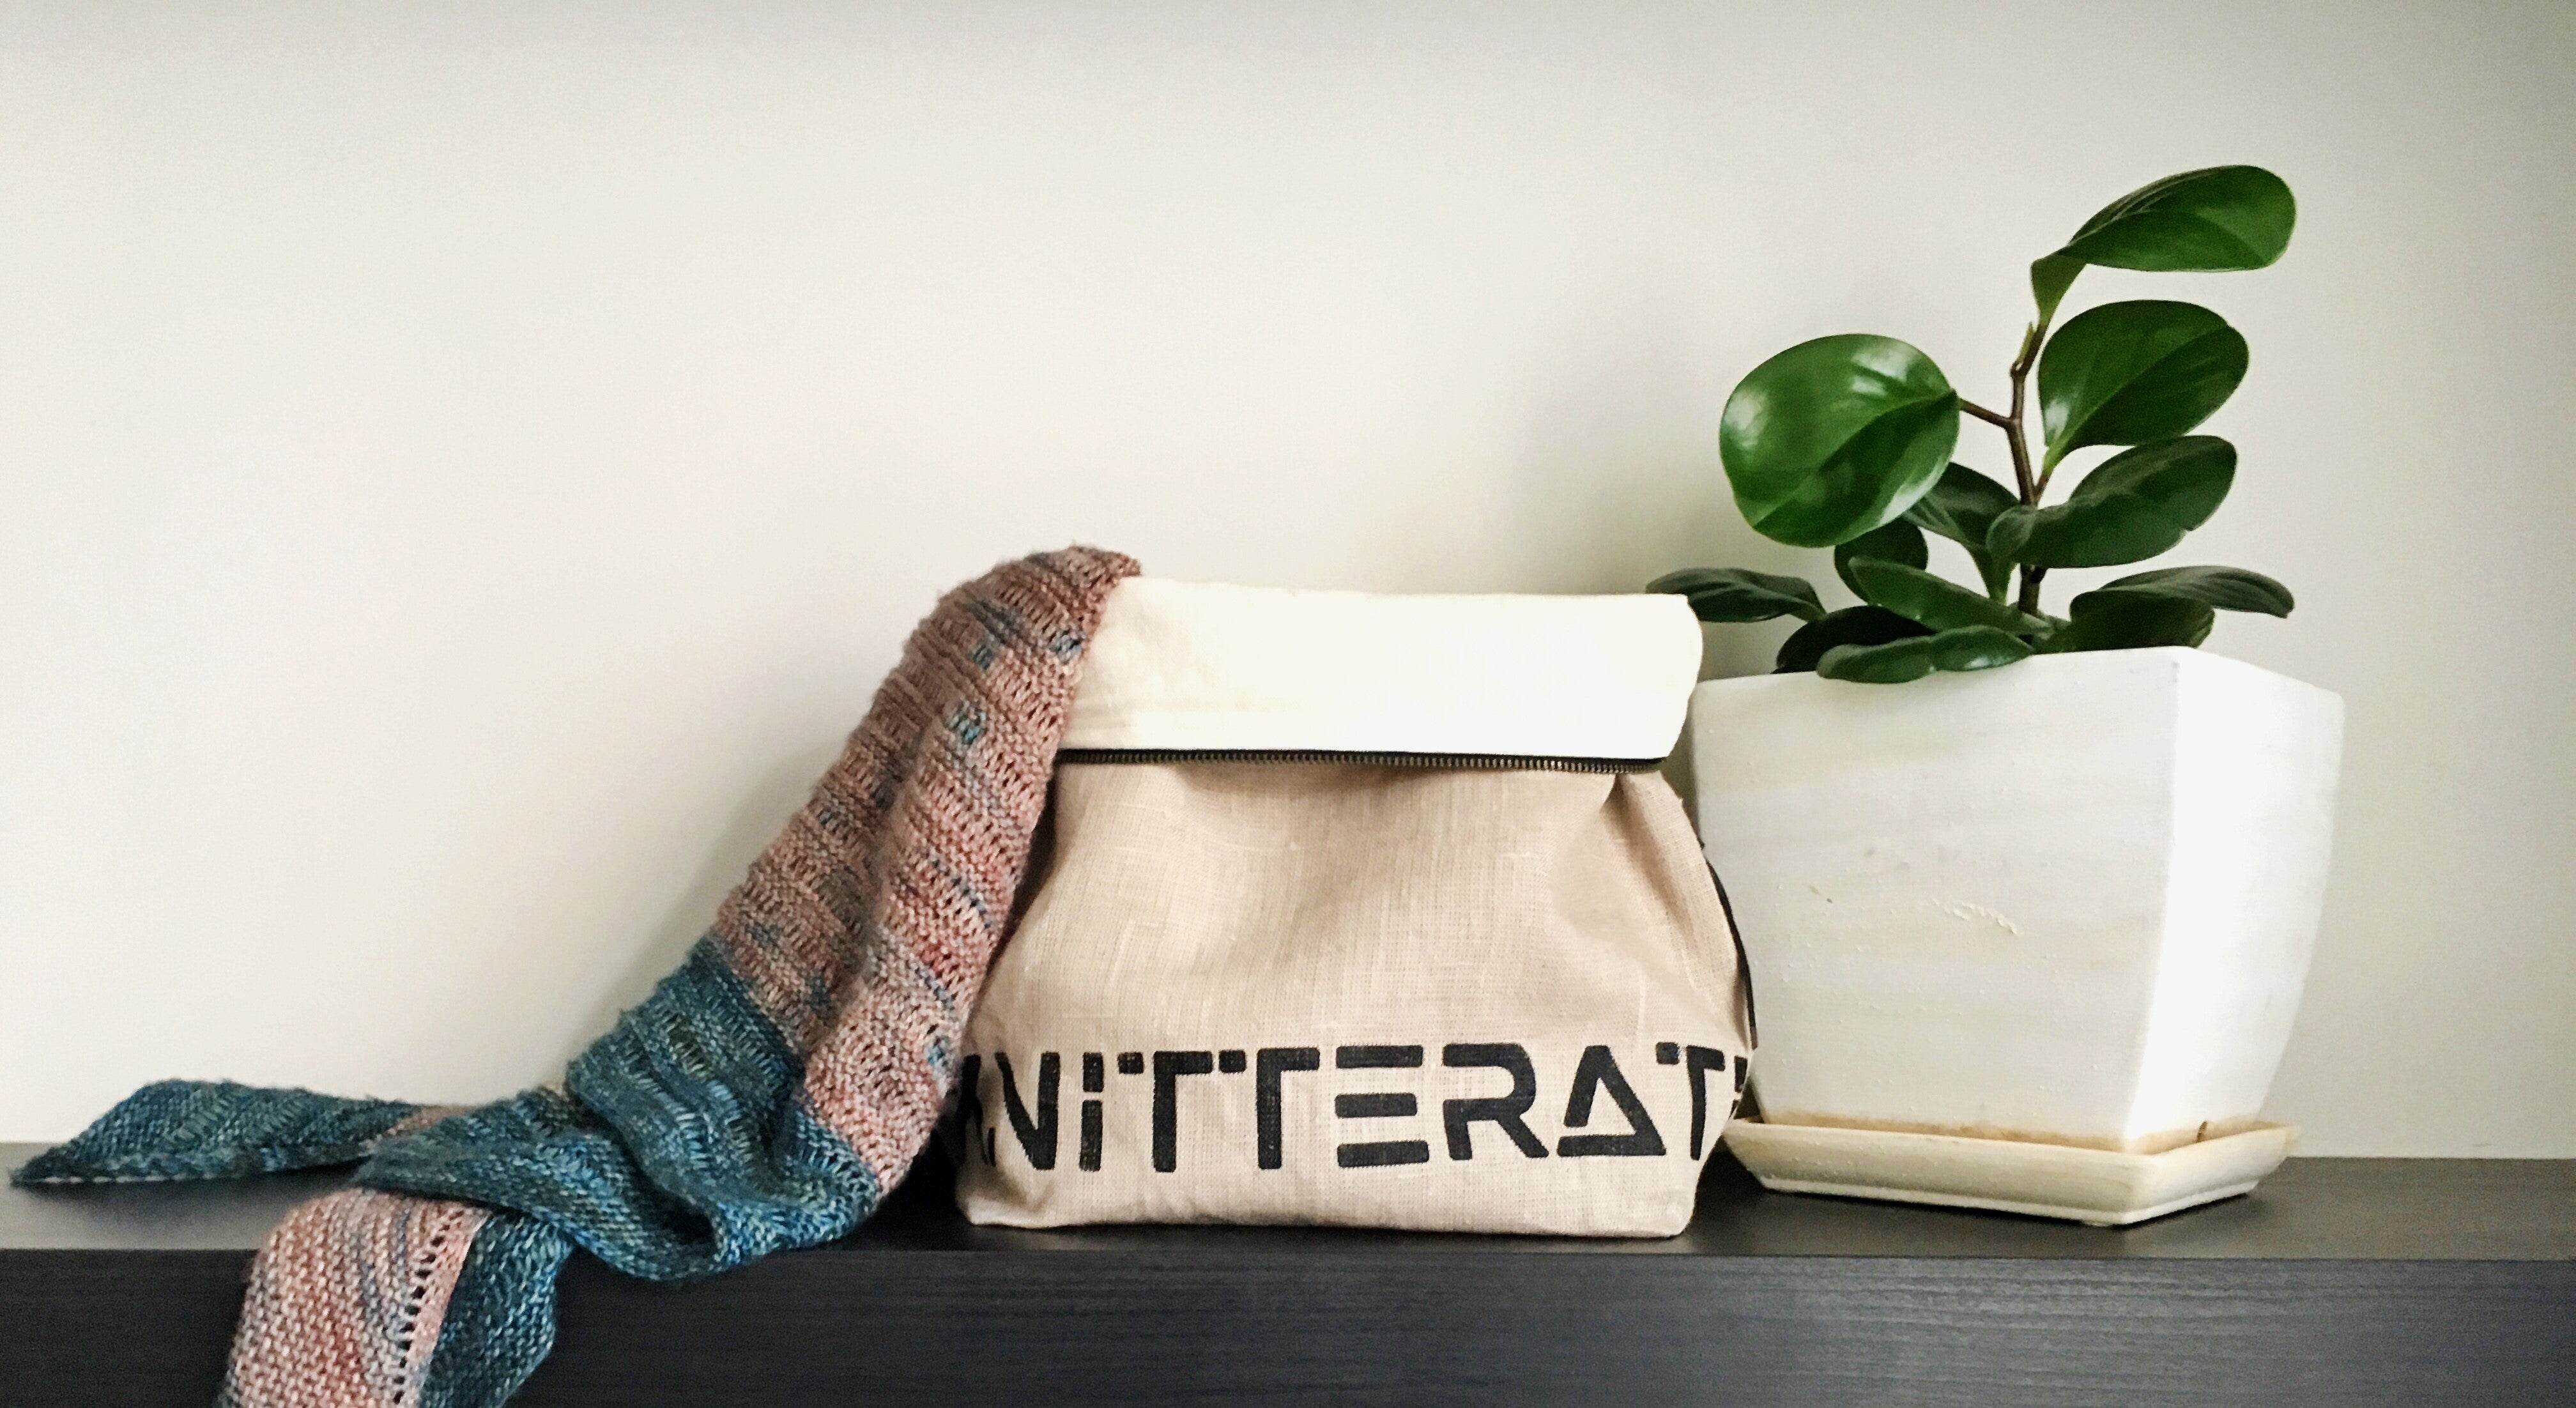 knitterati project bag / zipper bag / yarn bag / knitting / pearadise island / yarn bowl / screen print / screen printed knitterati bag